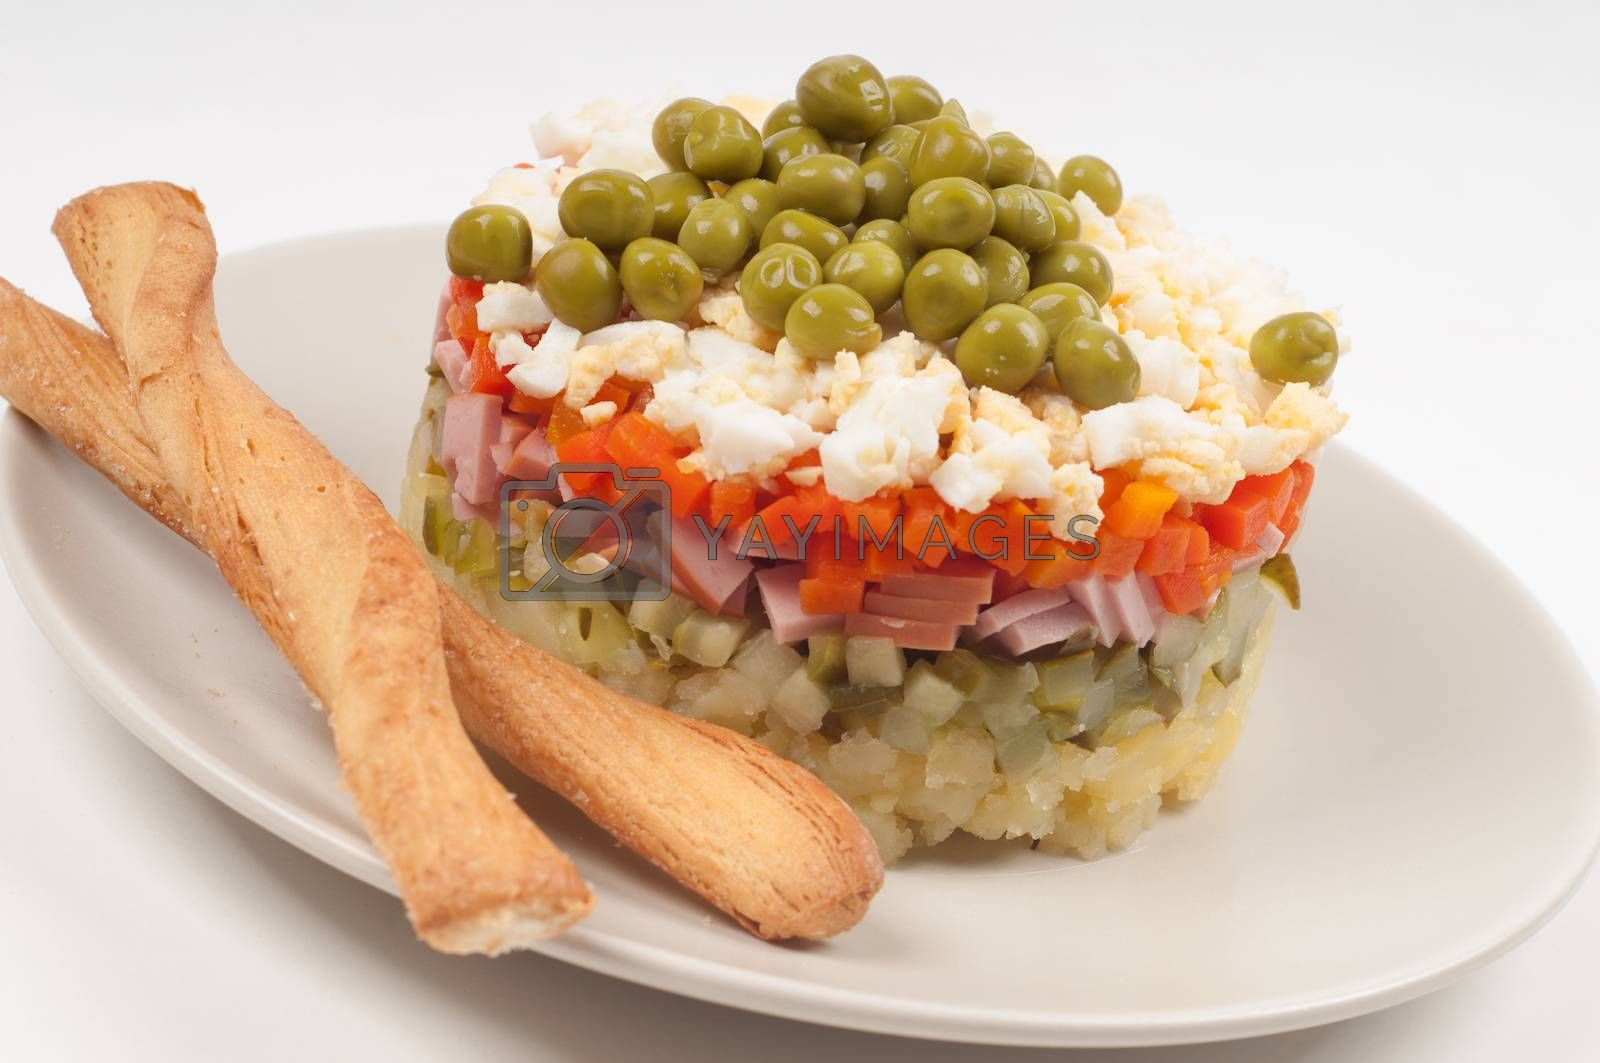 Potato Olivier, russian salad ingredients on the plate